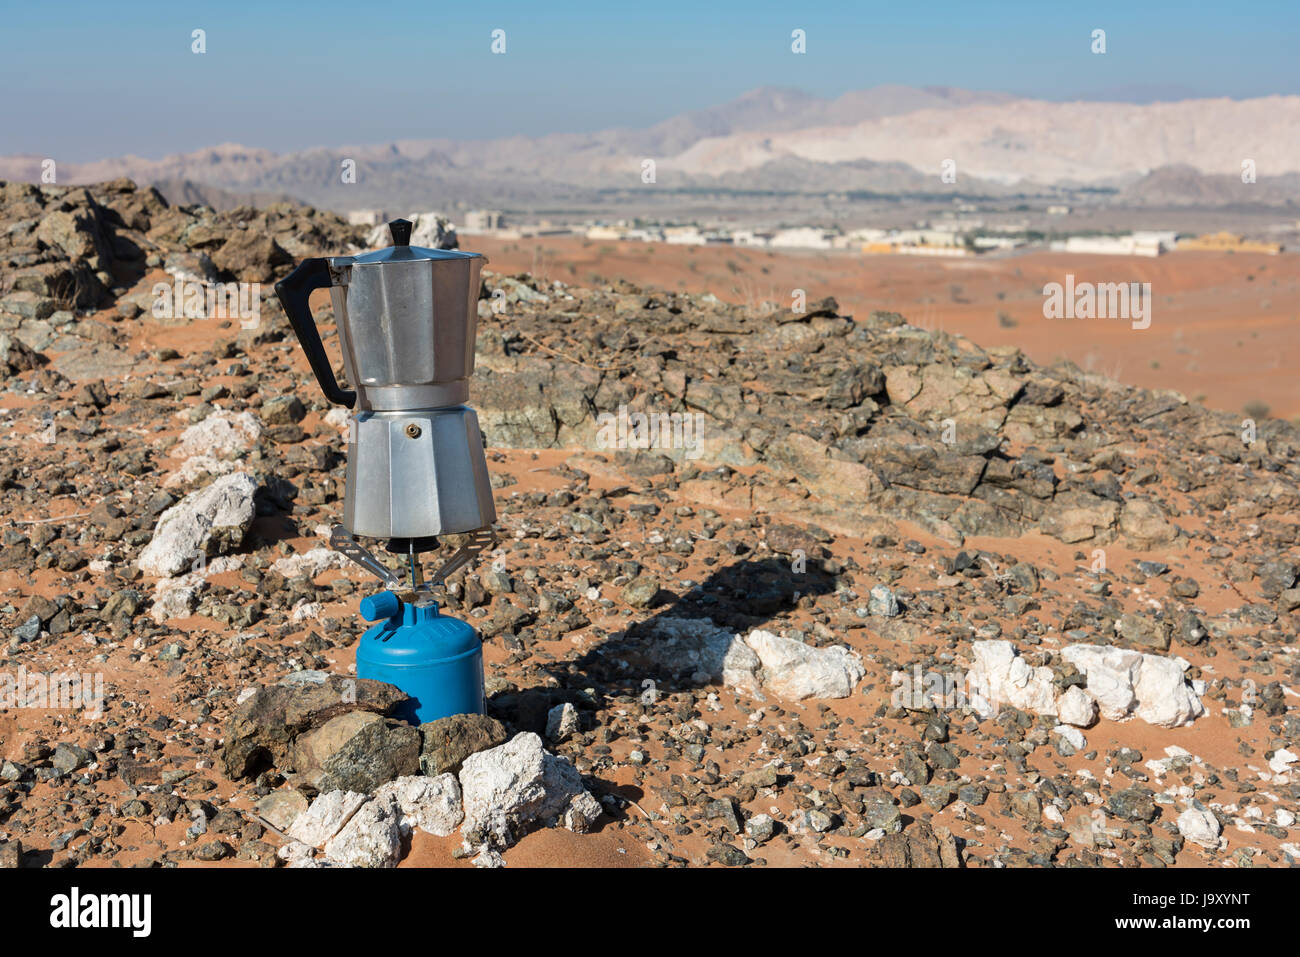 italian coffee maker boiling at a fireplace in the desert on